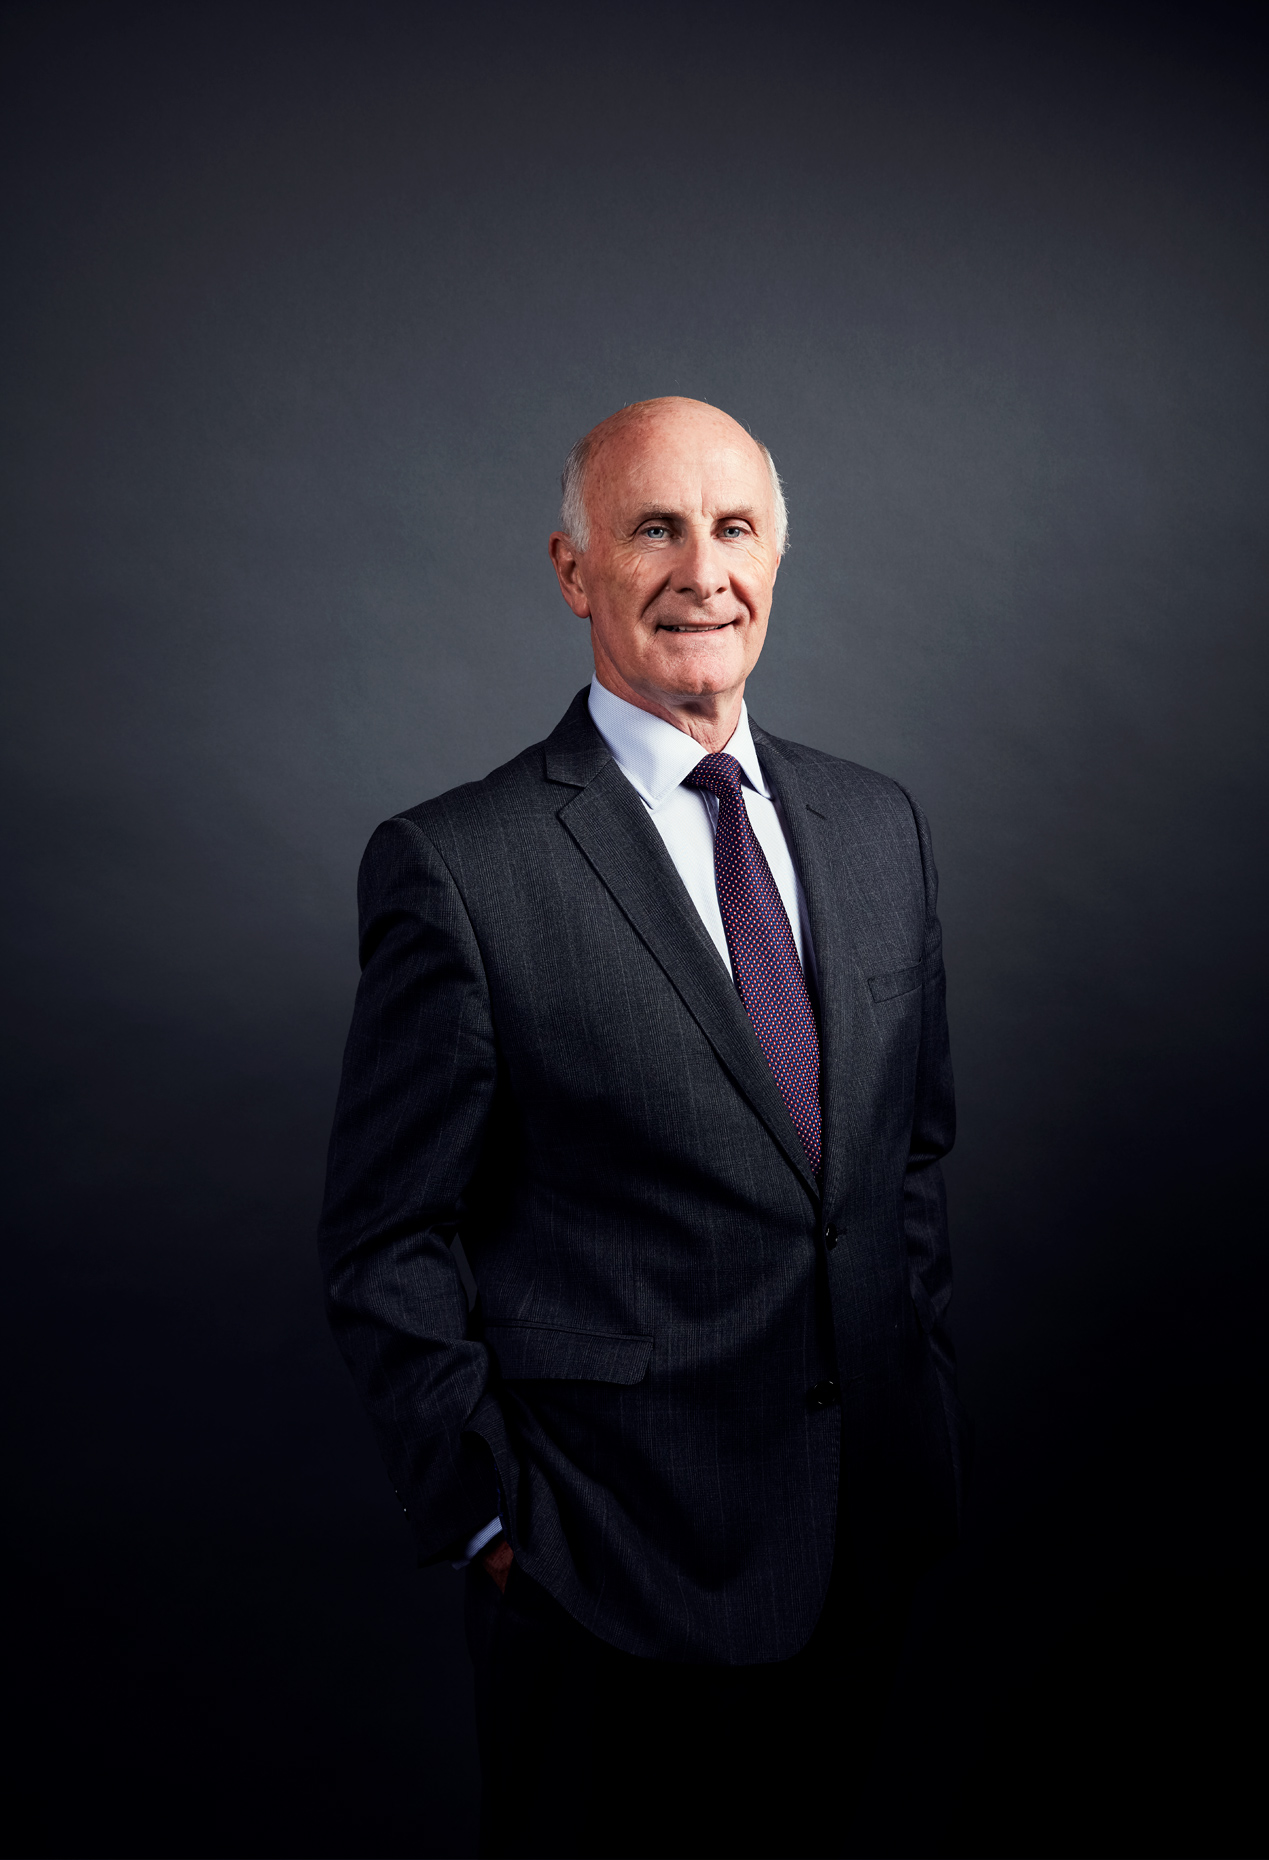 corporate portrait photography: powerful portraits of business people